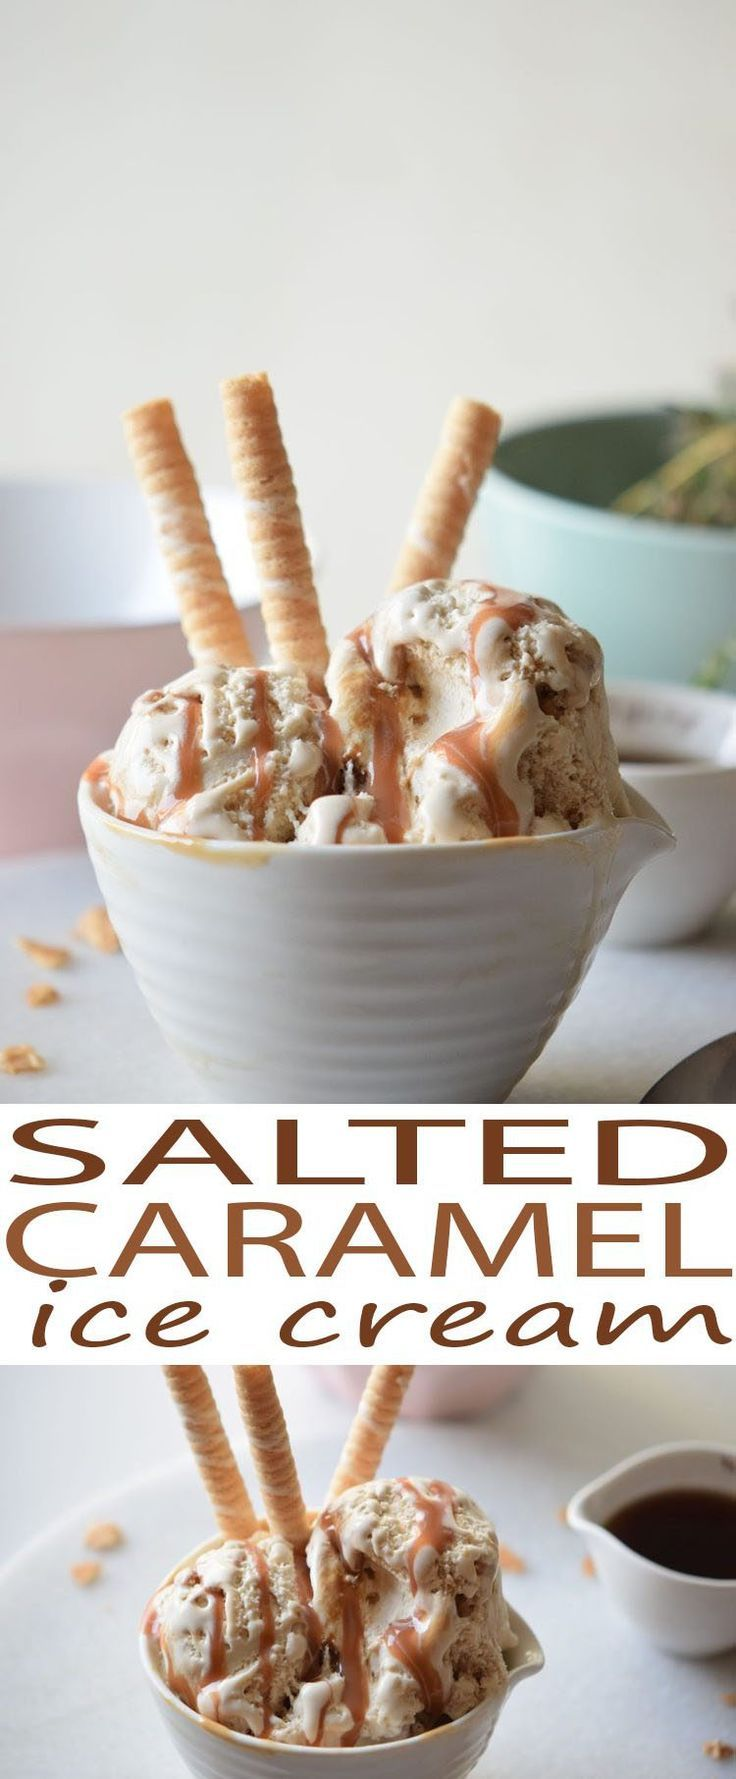 ... salted caramel ice cream salted caramel brownies salted caramel ice